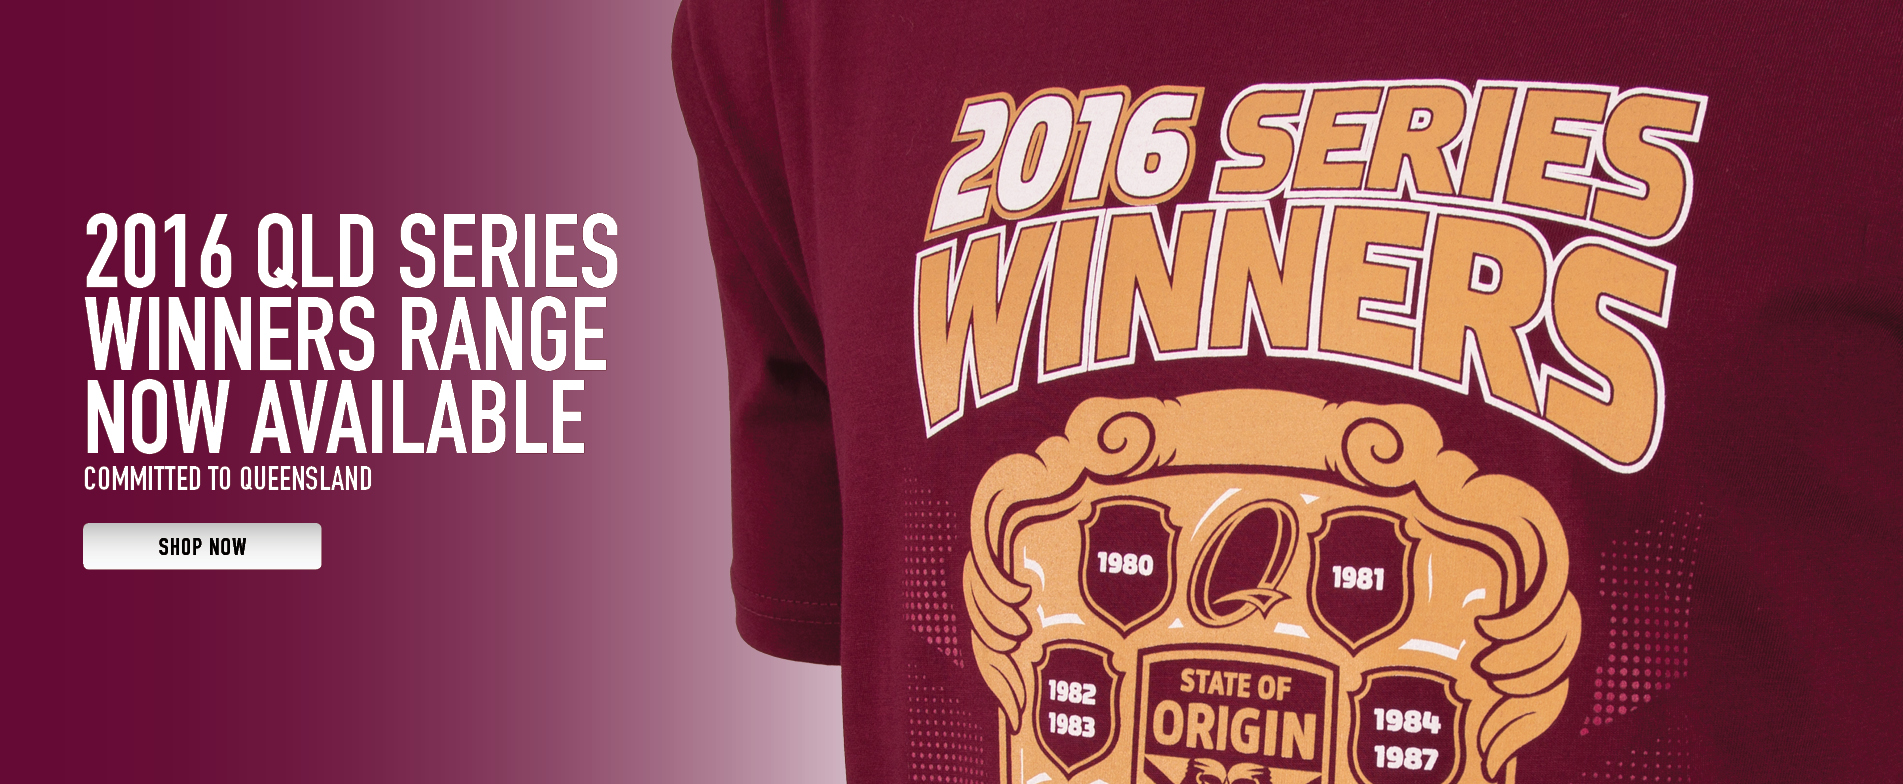 Queensland State of Origin Winning Series Range